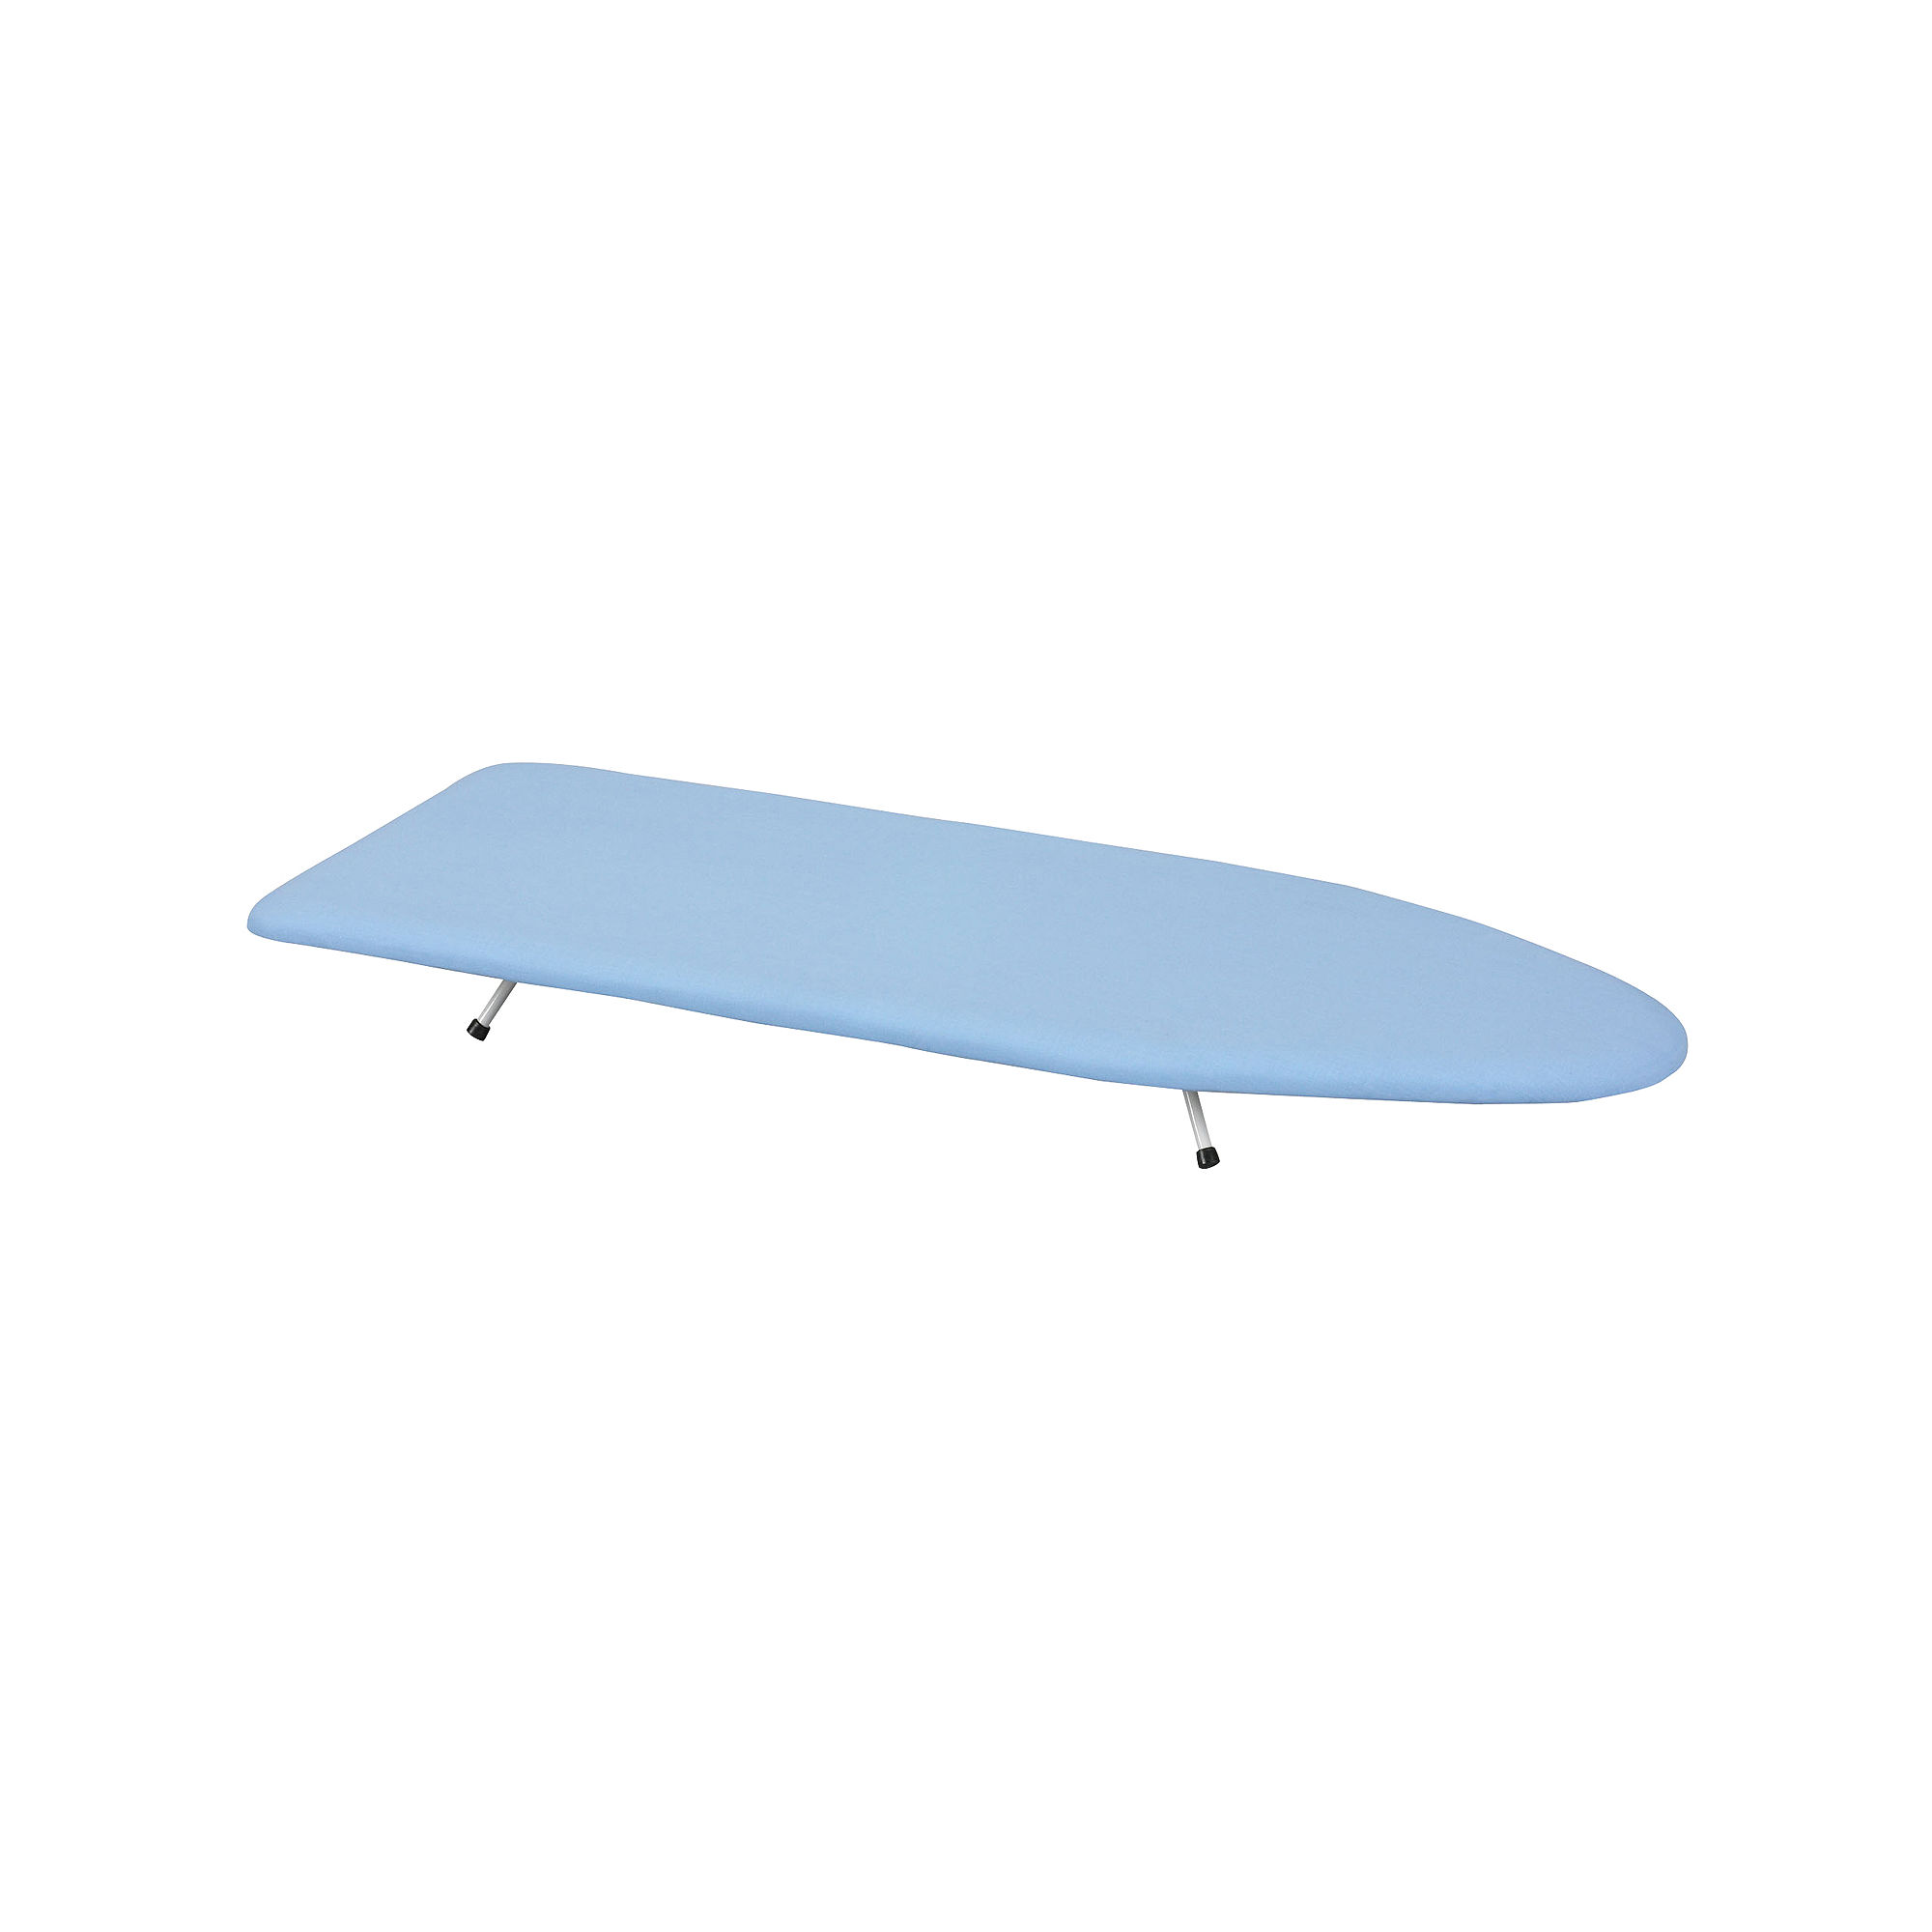 Household Essential 120101-0 Mini Ironing Board, 12 X 31 in Size, Wood